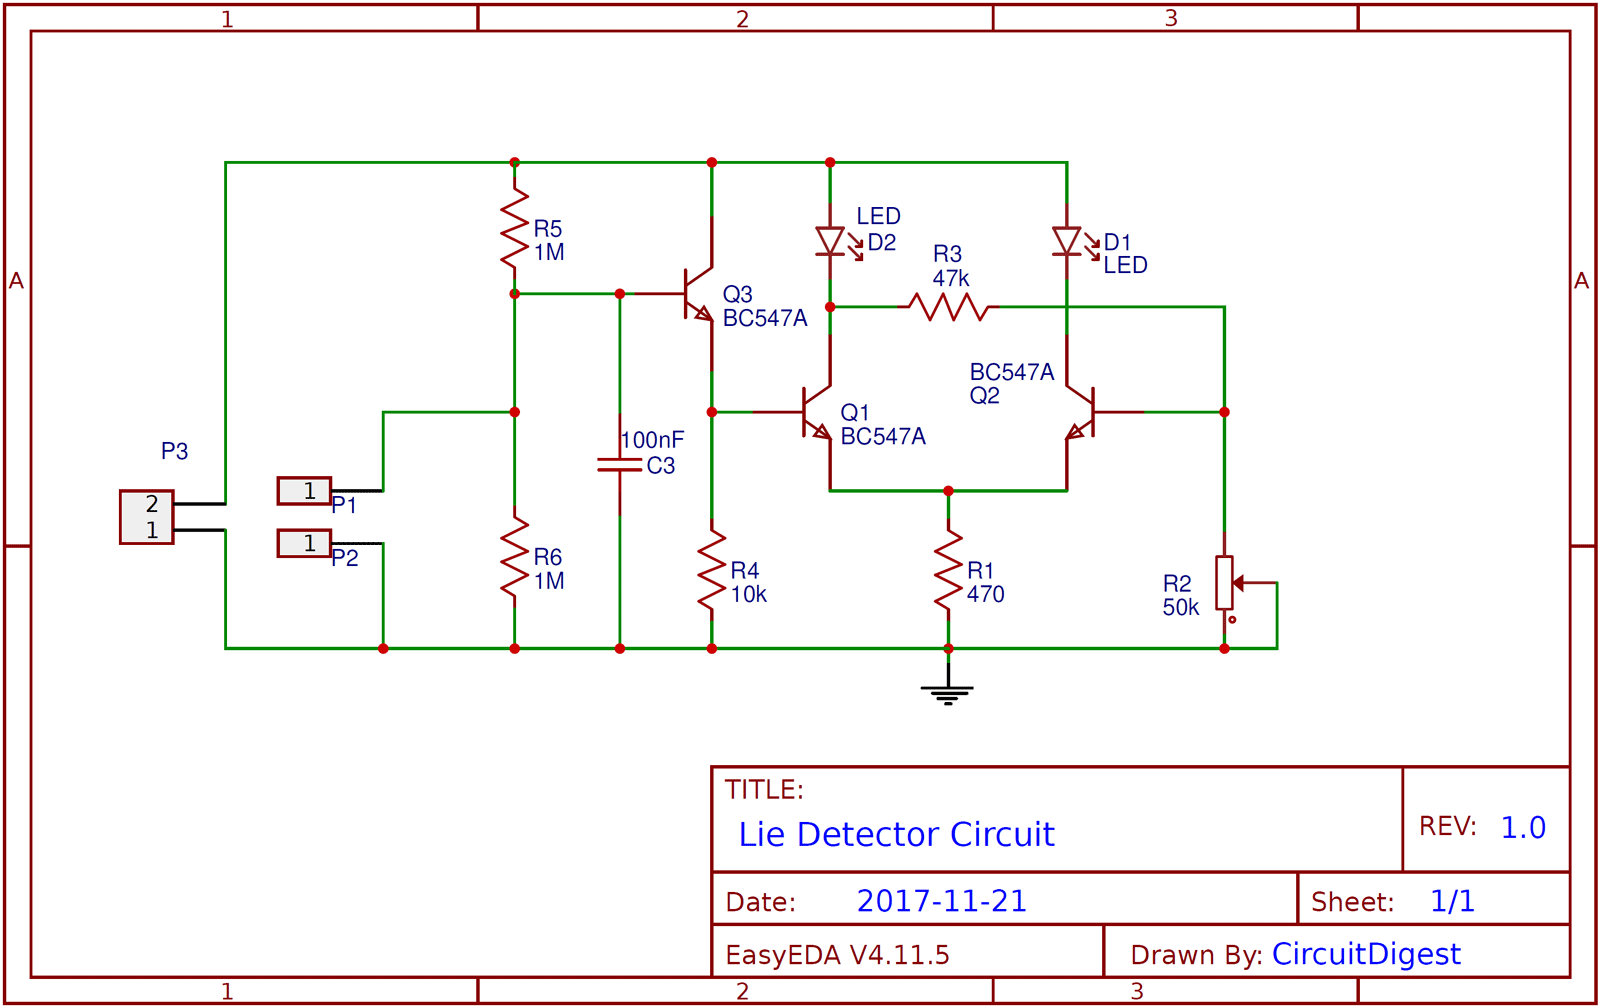 hight resolution of simple lie detector circuit using transistors simple lie detector circuit diagram schematic